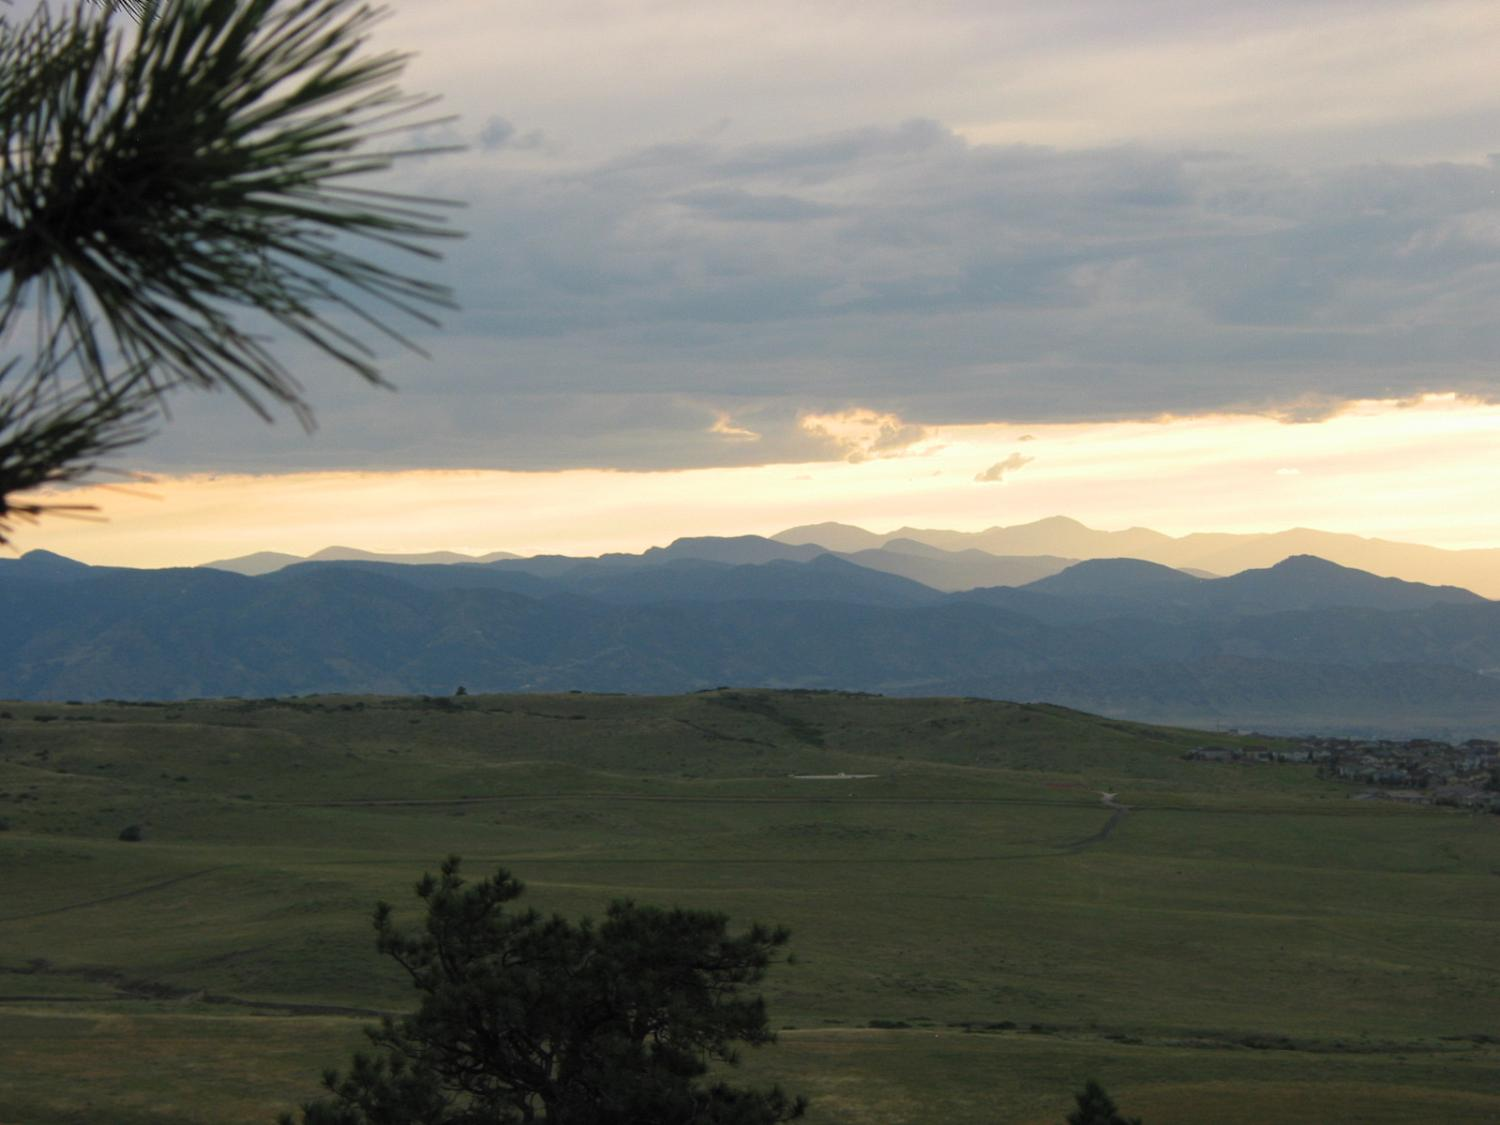 Mount Evans view at sunset